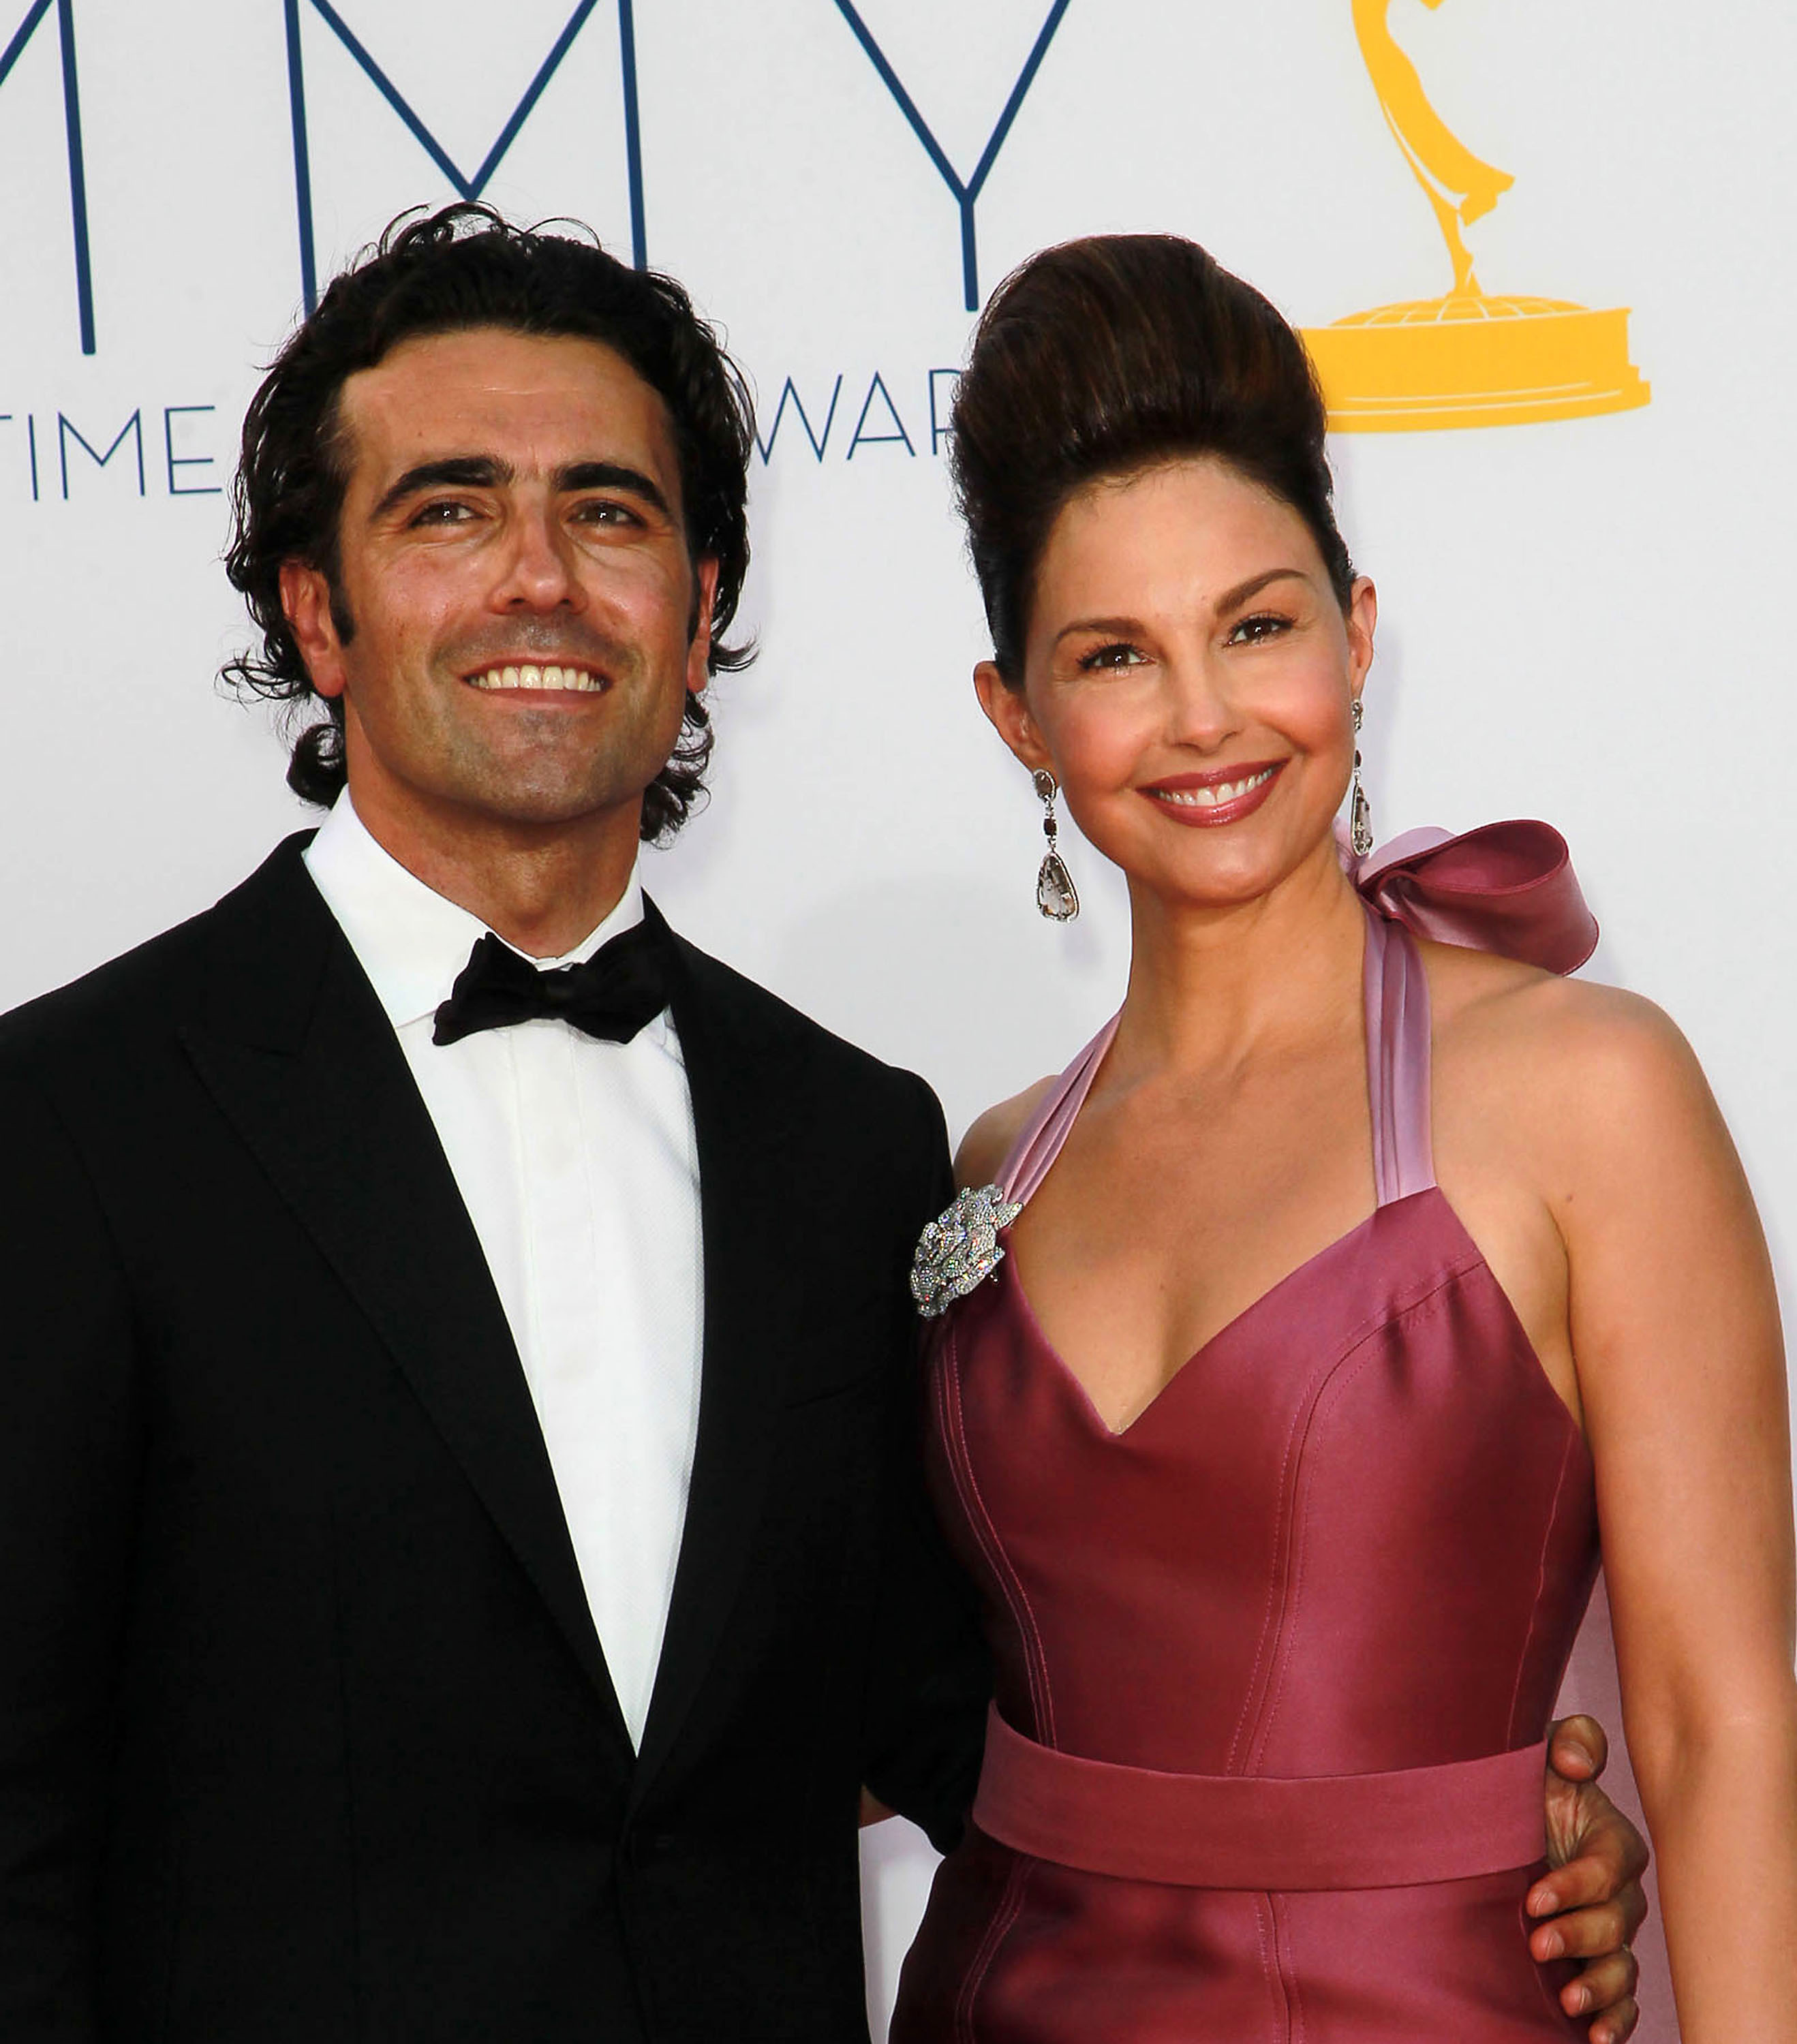 Ashley Judd and Dario Franchetti split, head to divorce